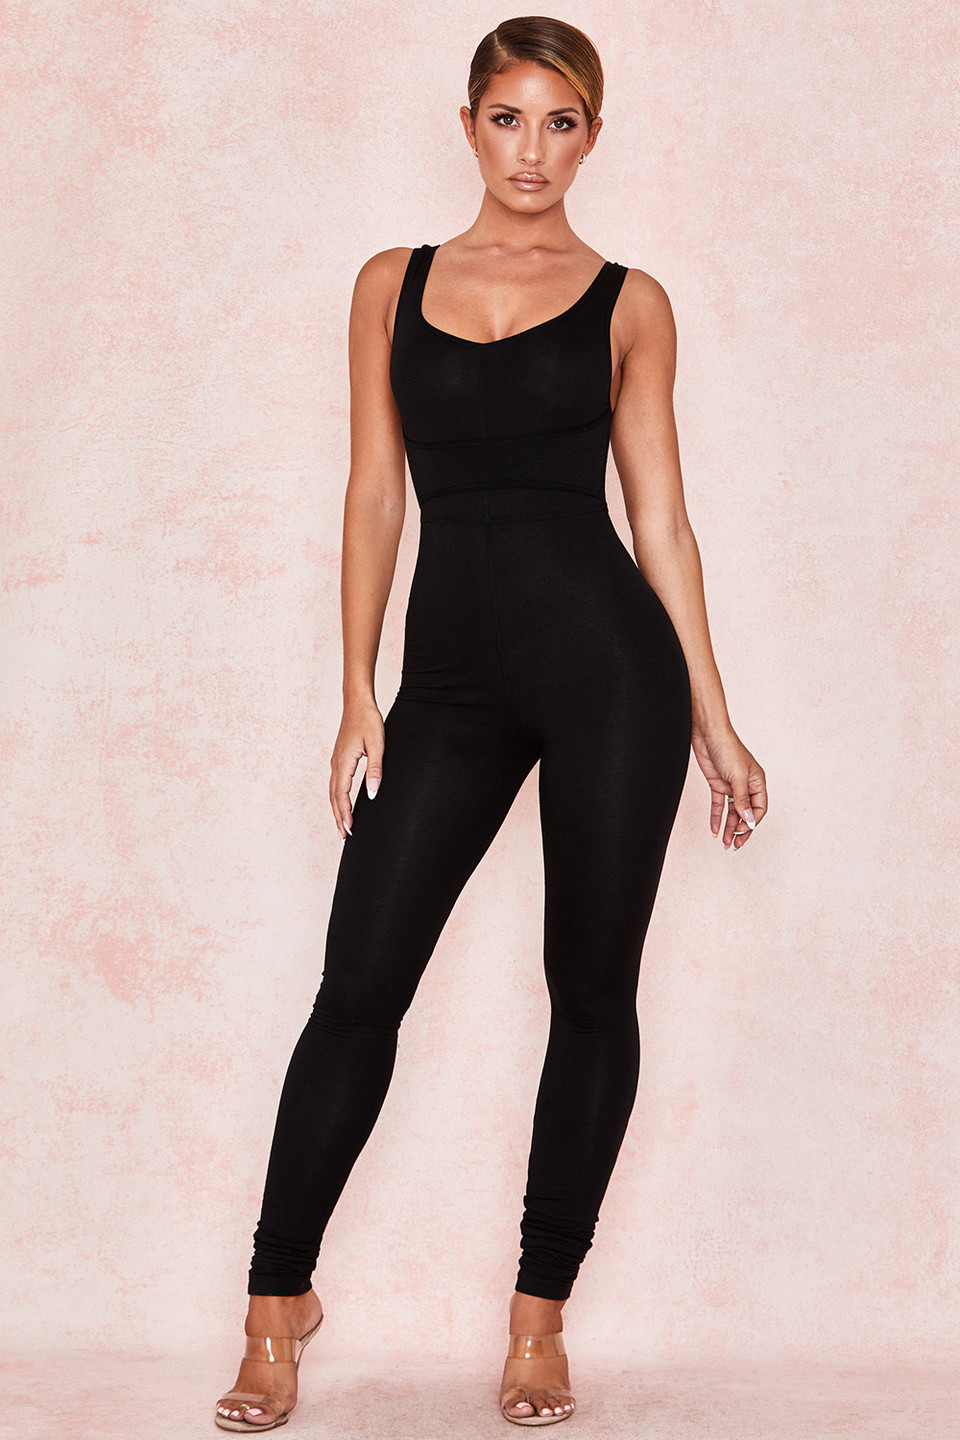 Zinnia Black Waist Cinching Jumpsuit